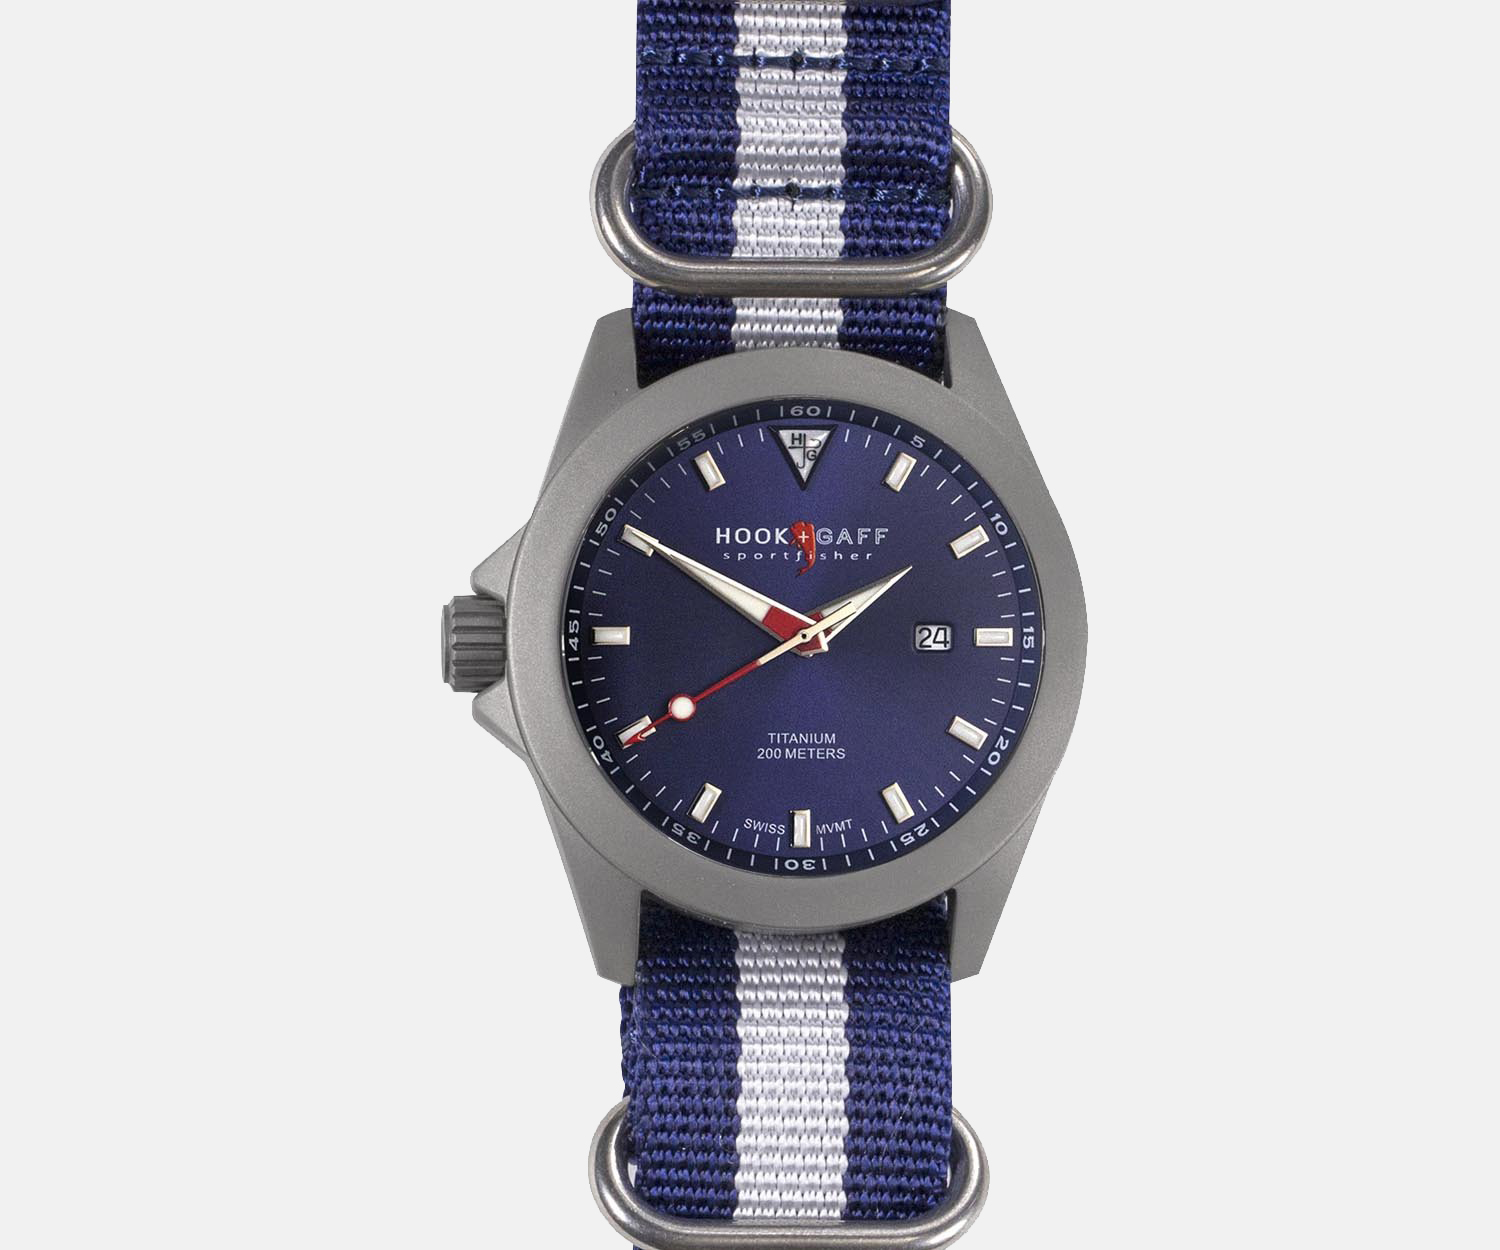 HOOK AND GAFF SPORTFISHER II CLASSIC BLUE DIAL